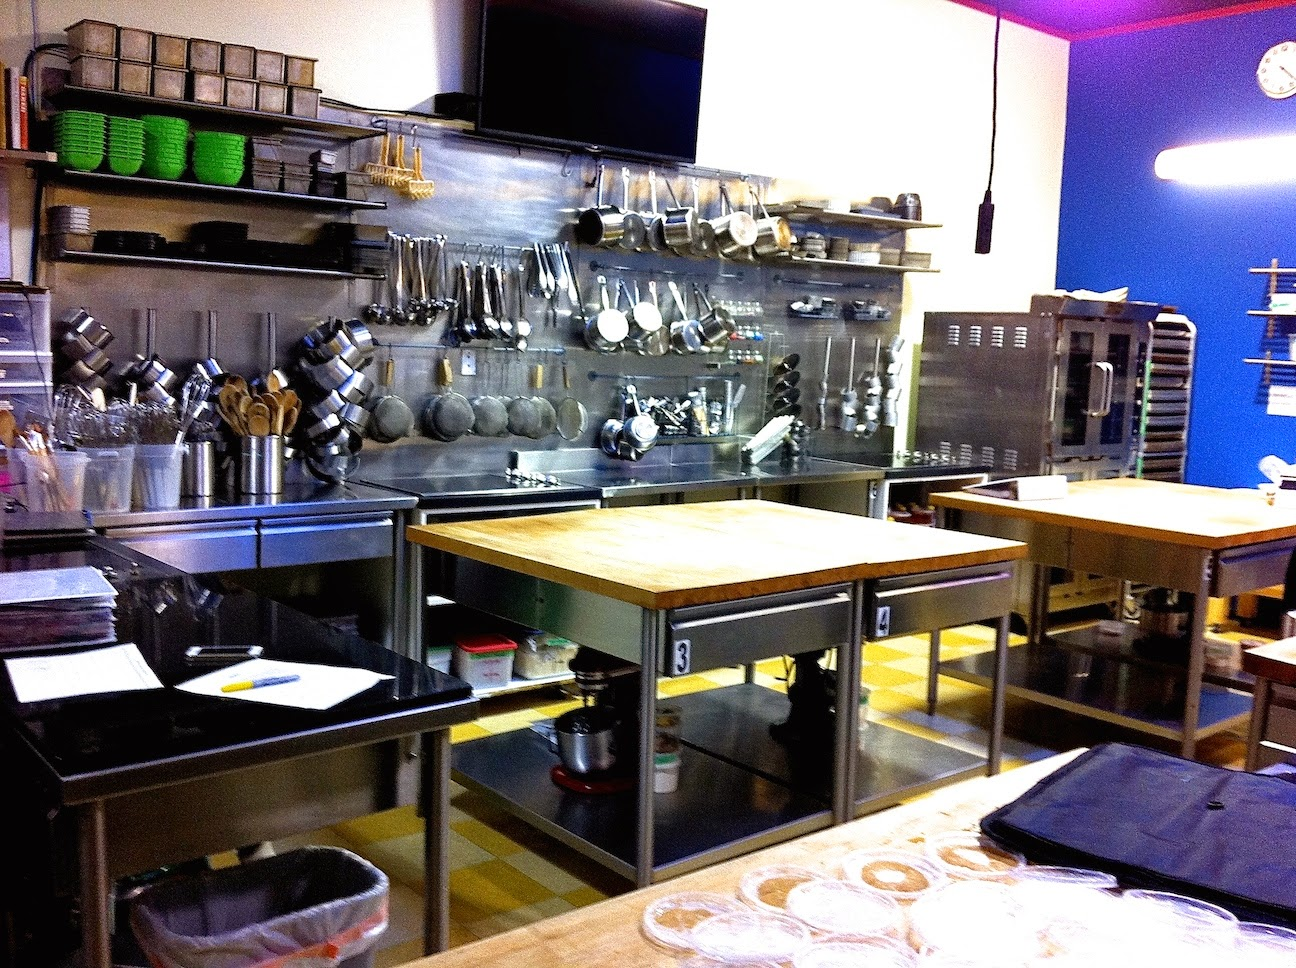 A pastry kitchen